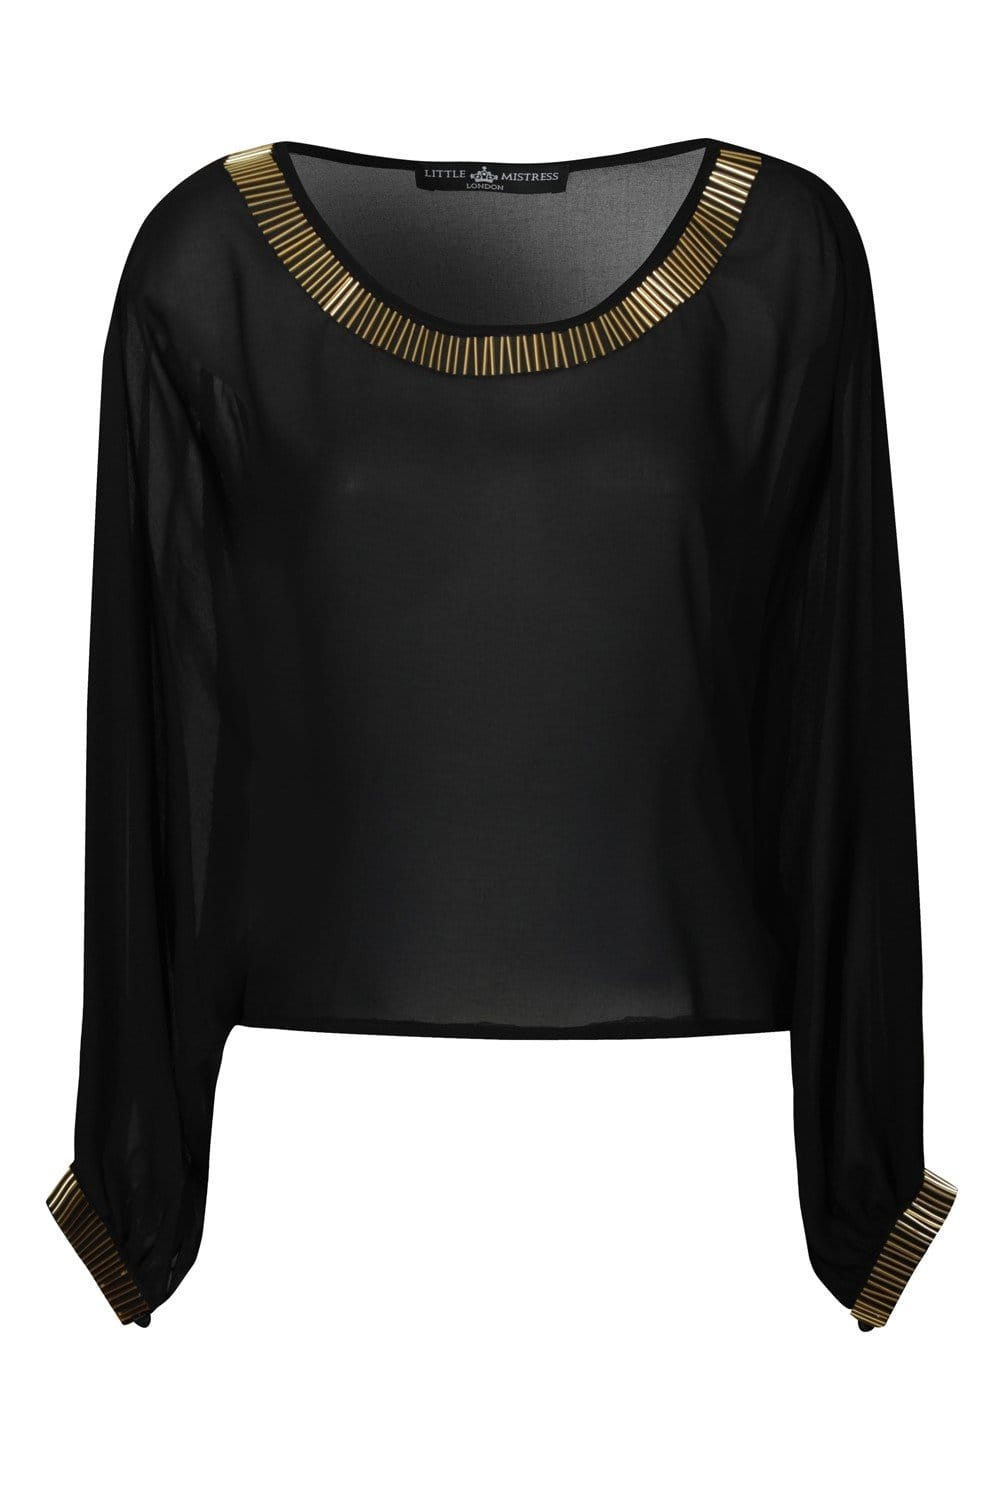 Little Mistress Black Long Sleeve Chiffon Batwing Top With Gold Beading